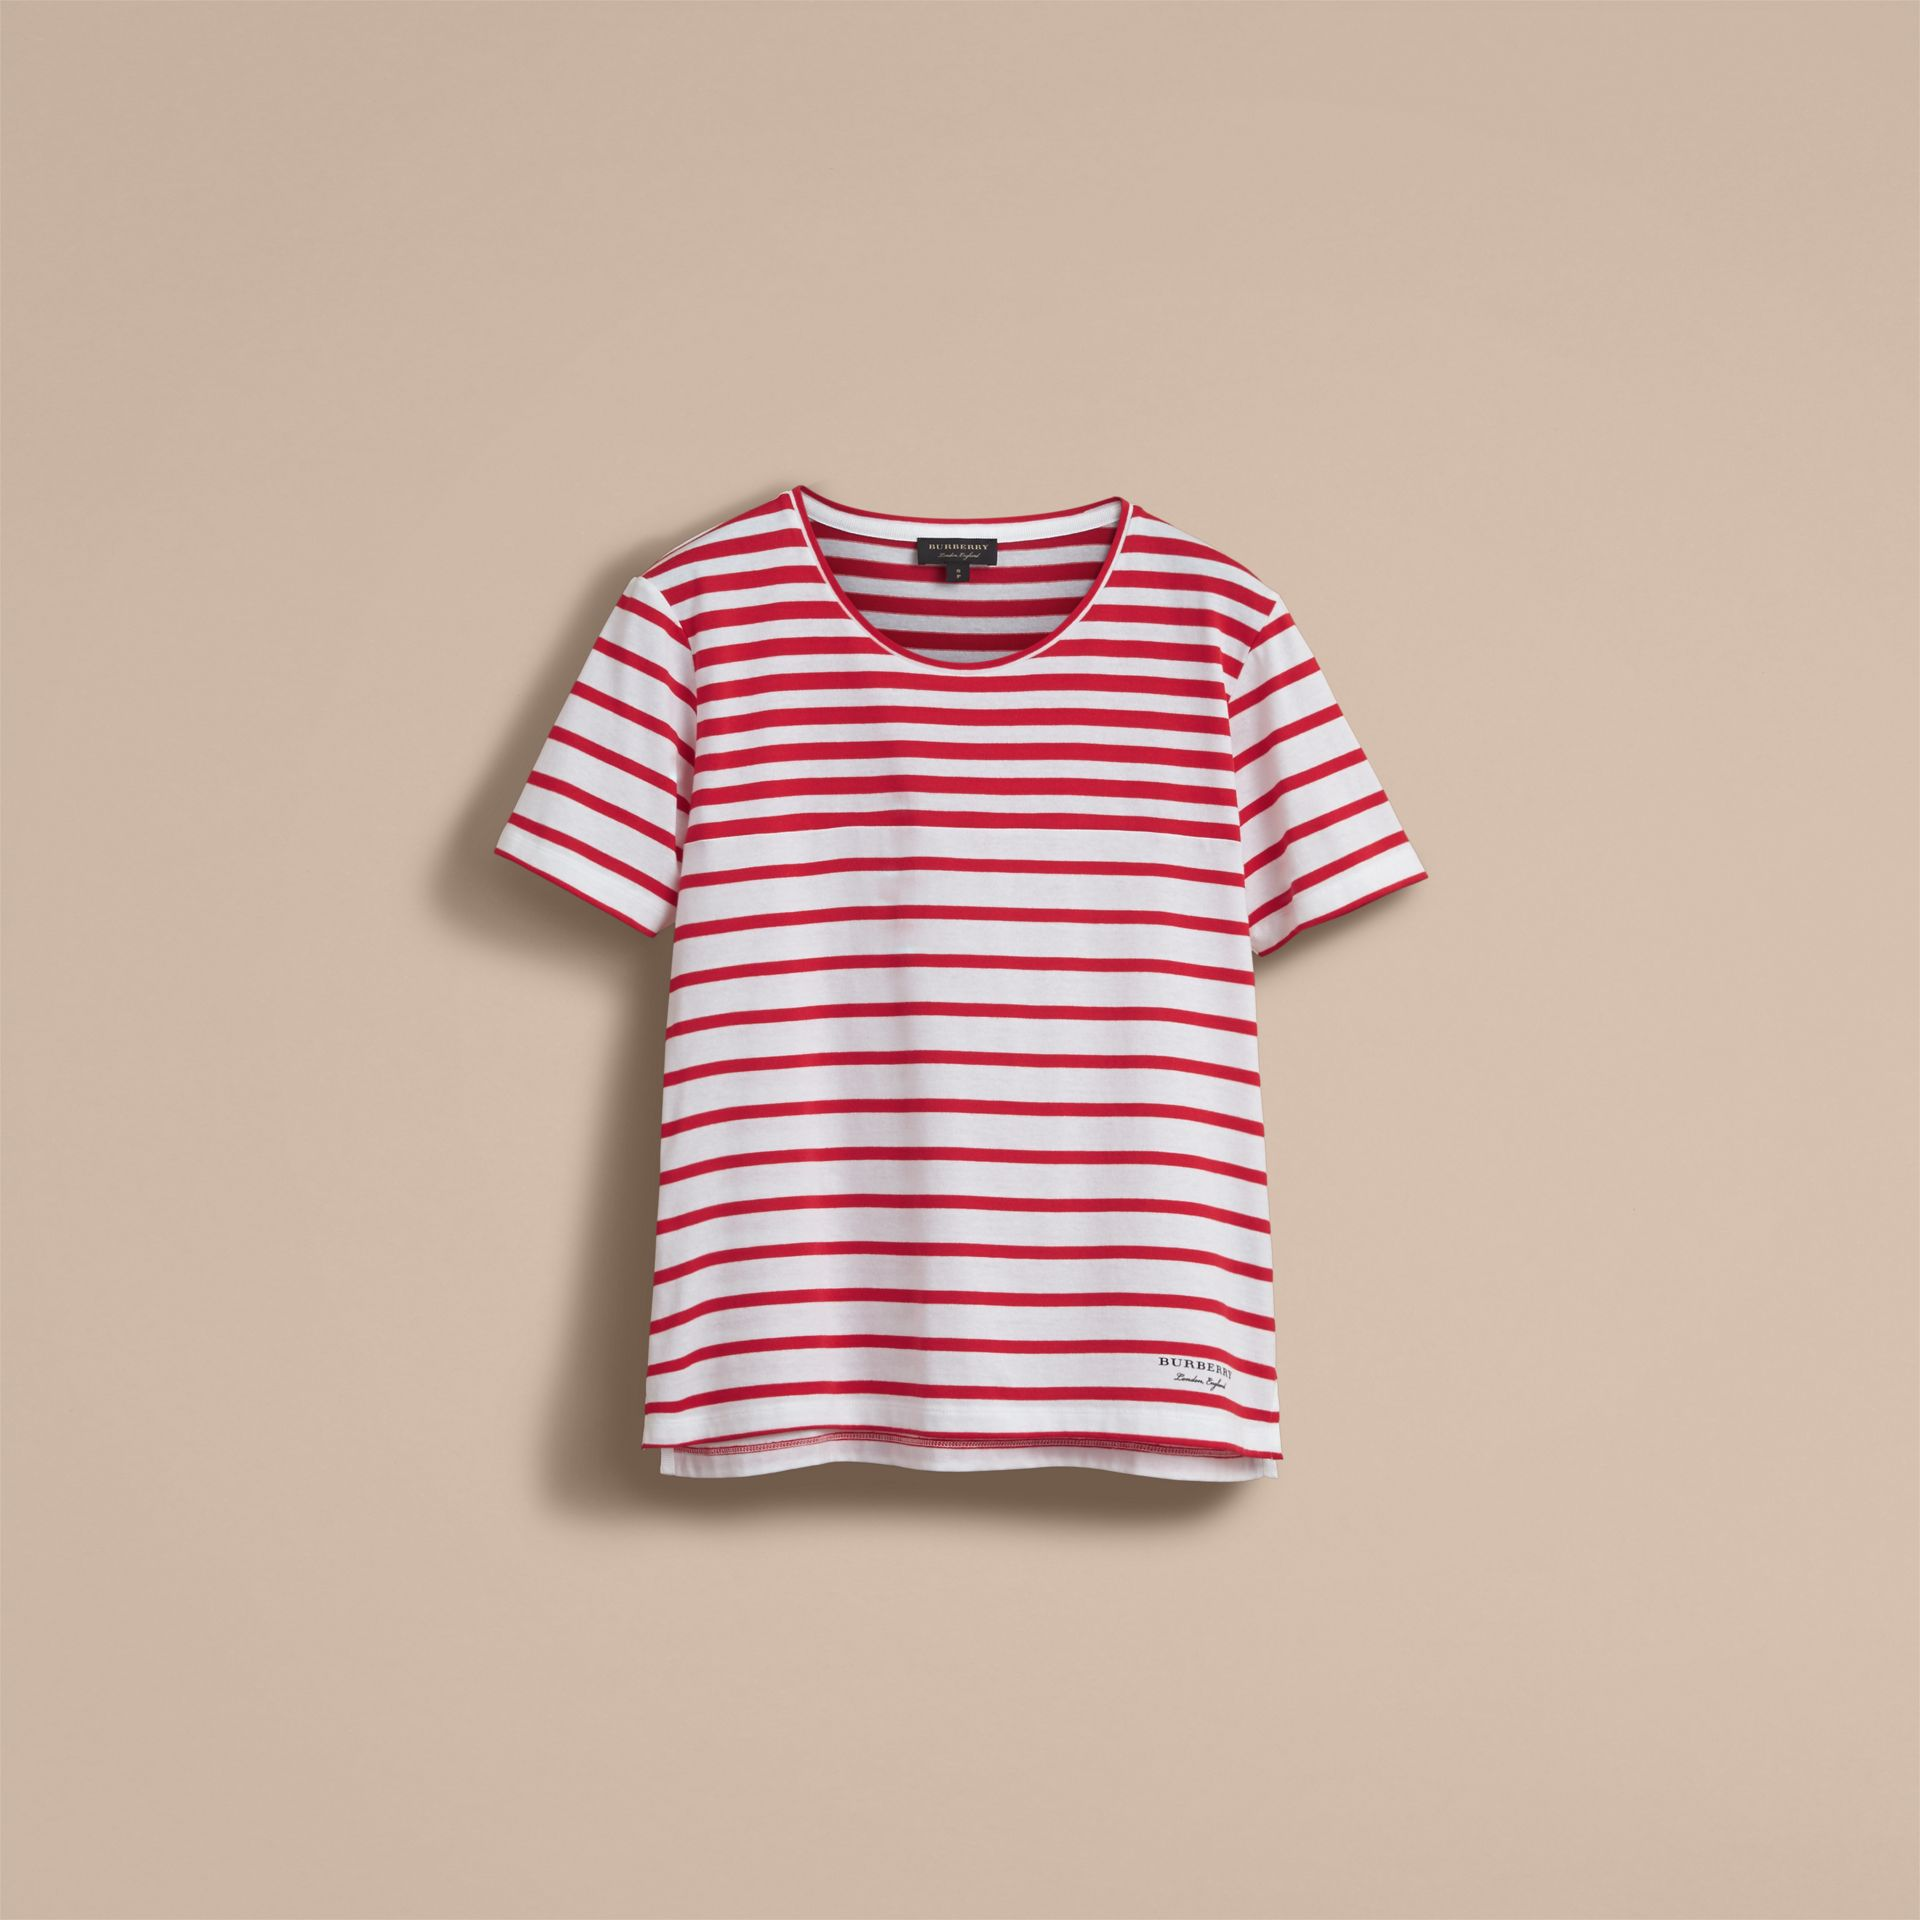 Breton Stripe Cotton T-shirt in Military Red/white - Women | Burberry - gallery image 3